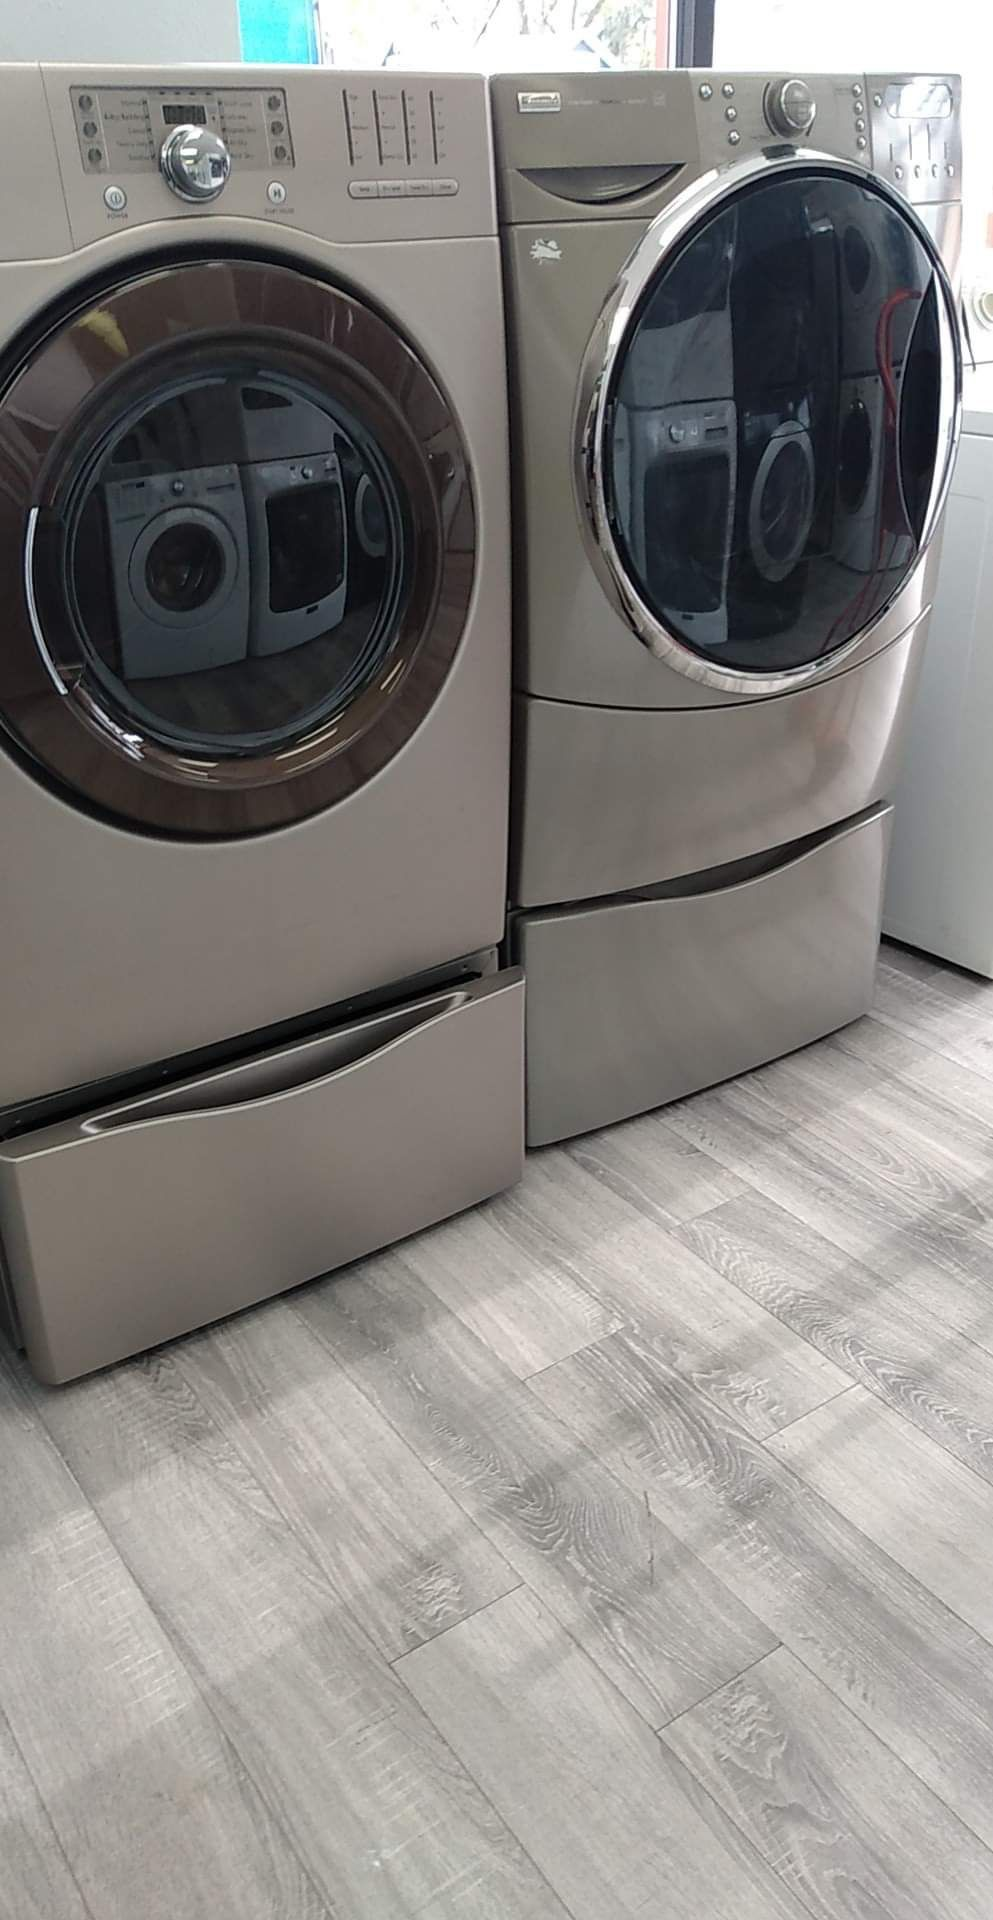 Kenmore  Washer And Gas Dryer Worh Pedestals Included Set For $745